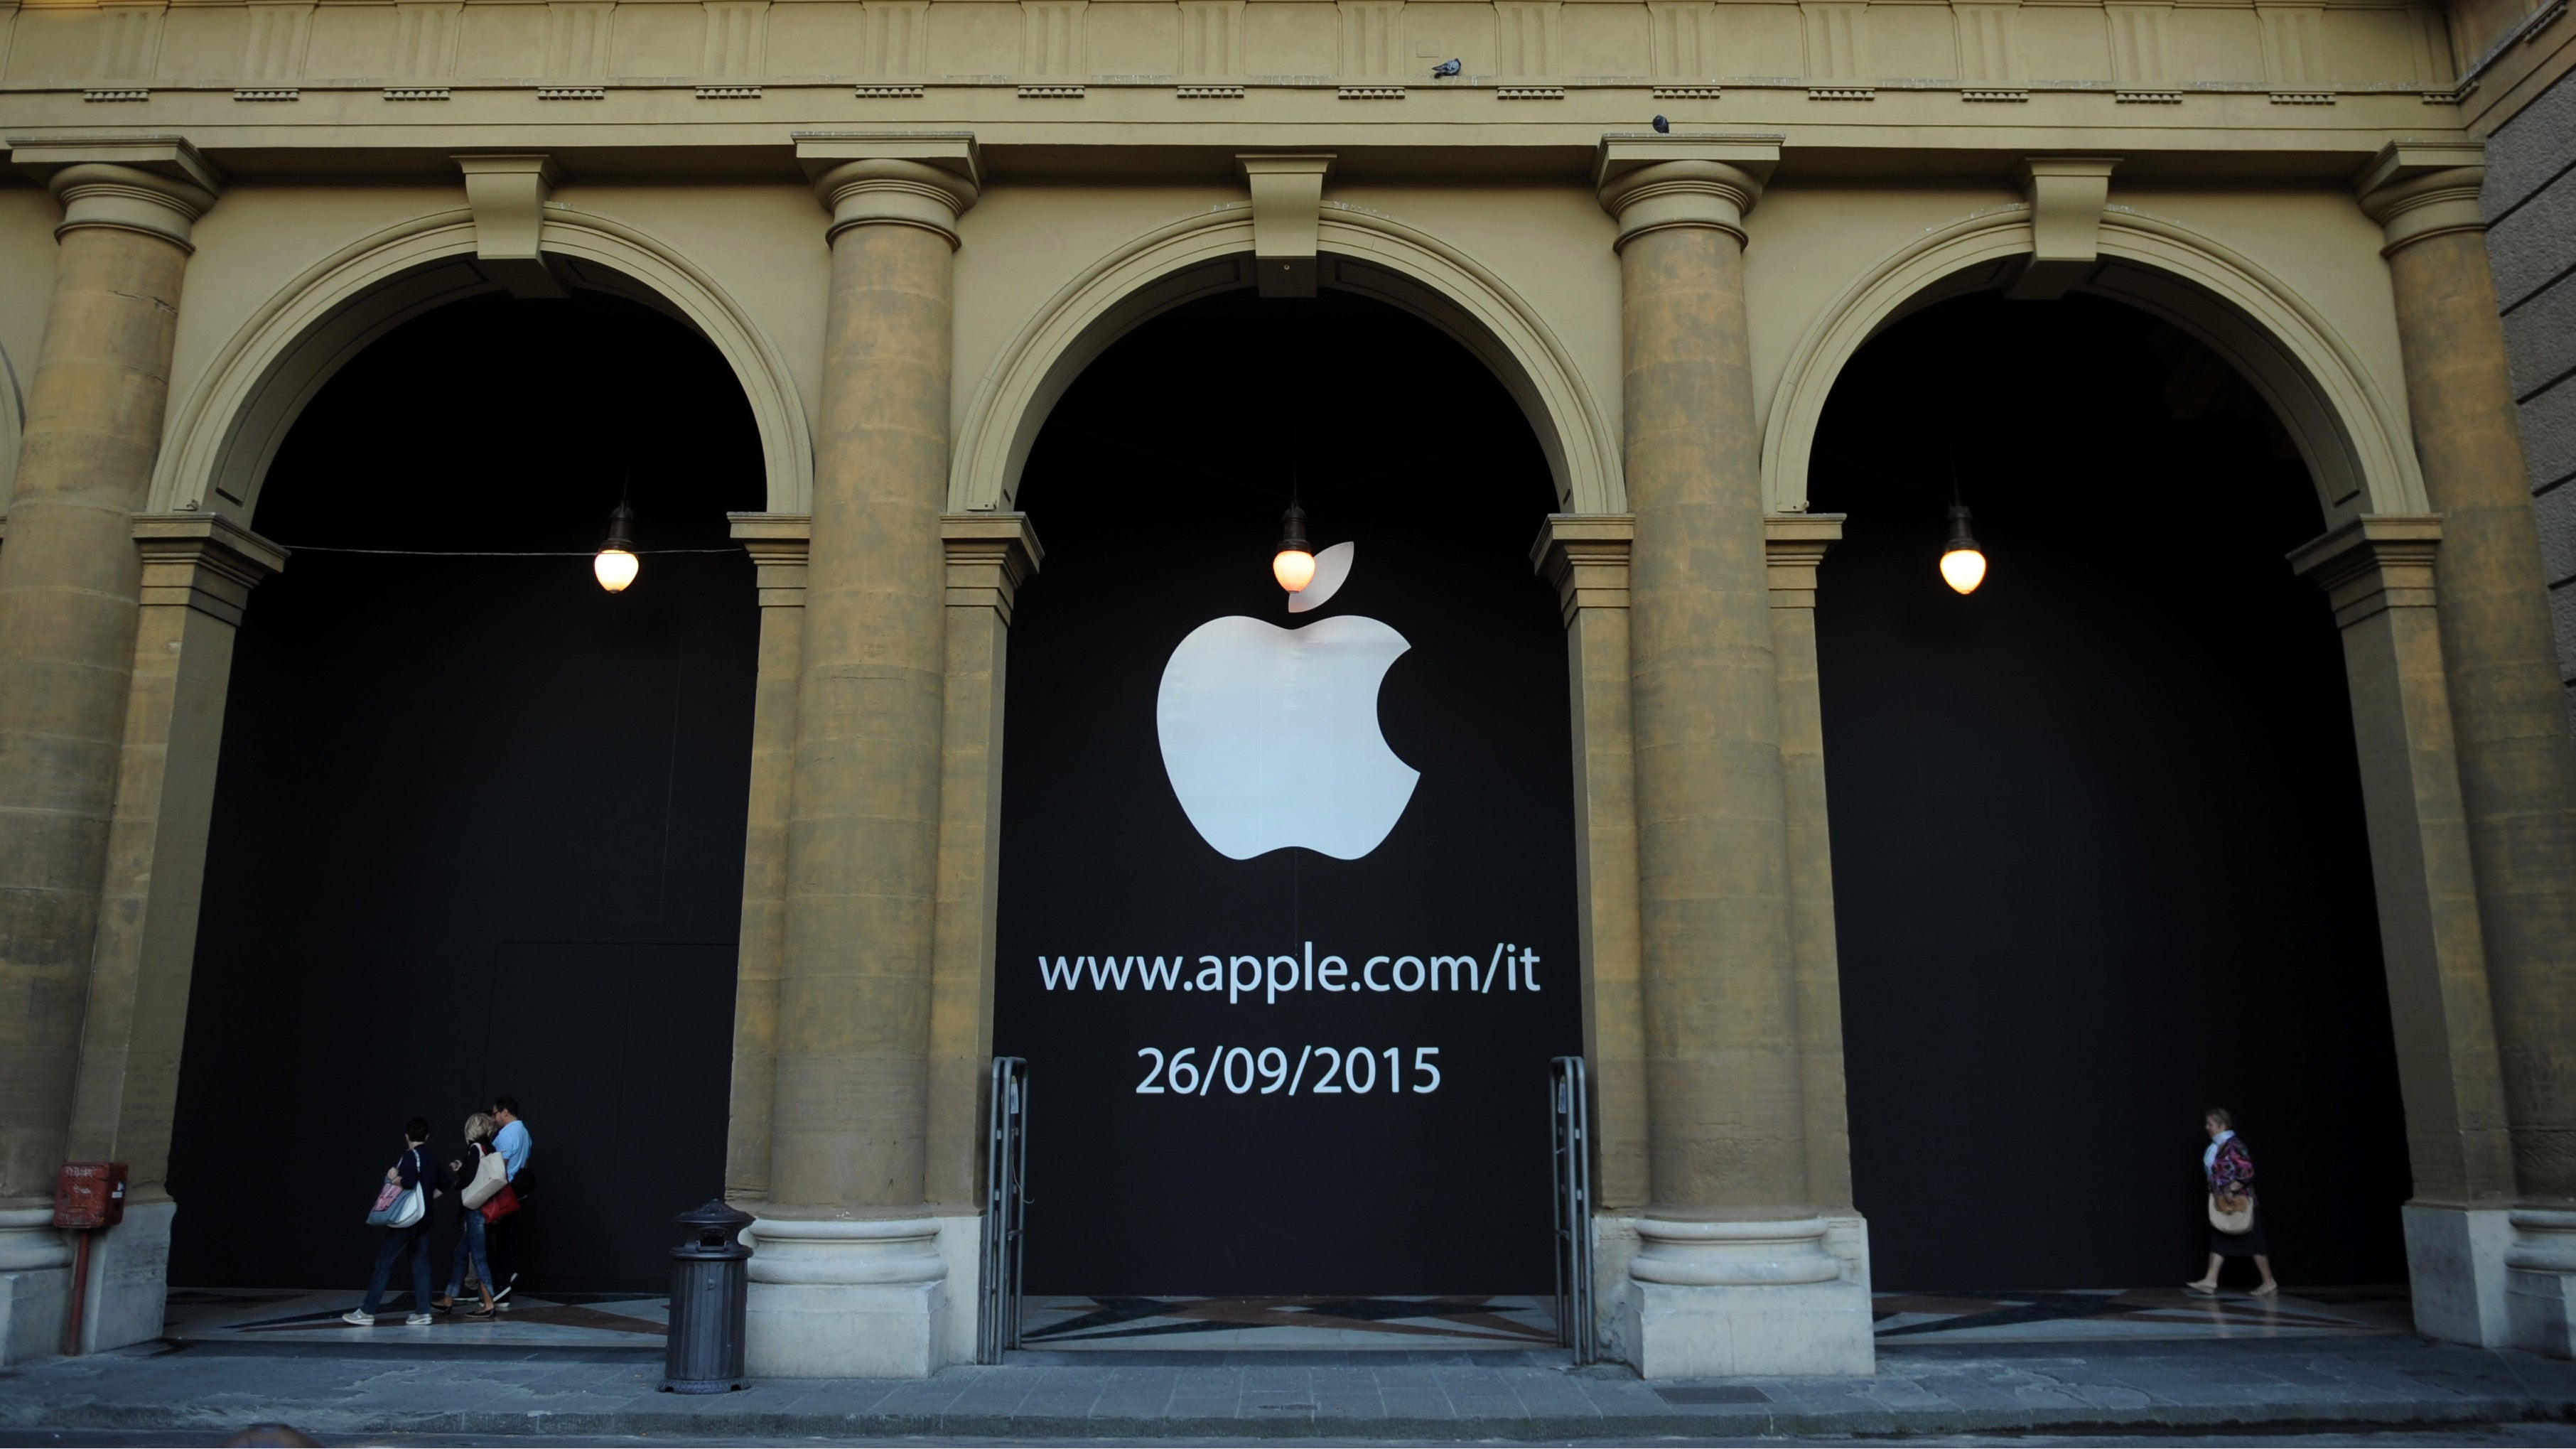 Despite Tim Cook's Trashtalking, Apple Will Pay Italy $US348 ($477) Million in Back Taxes